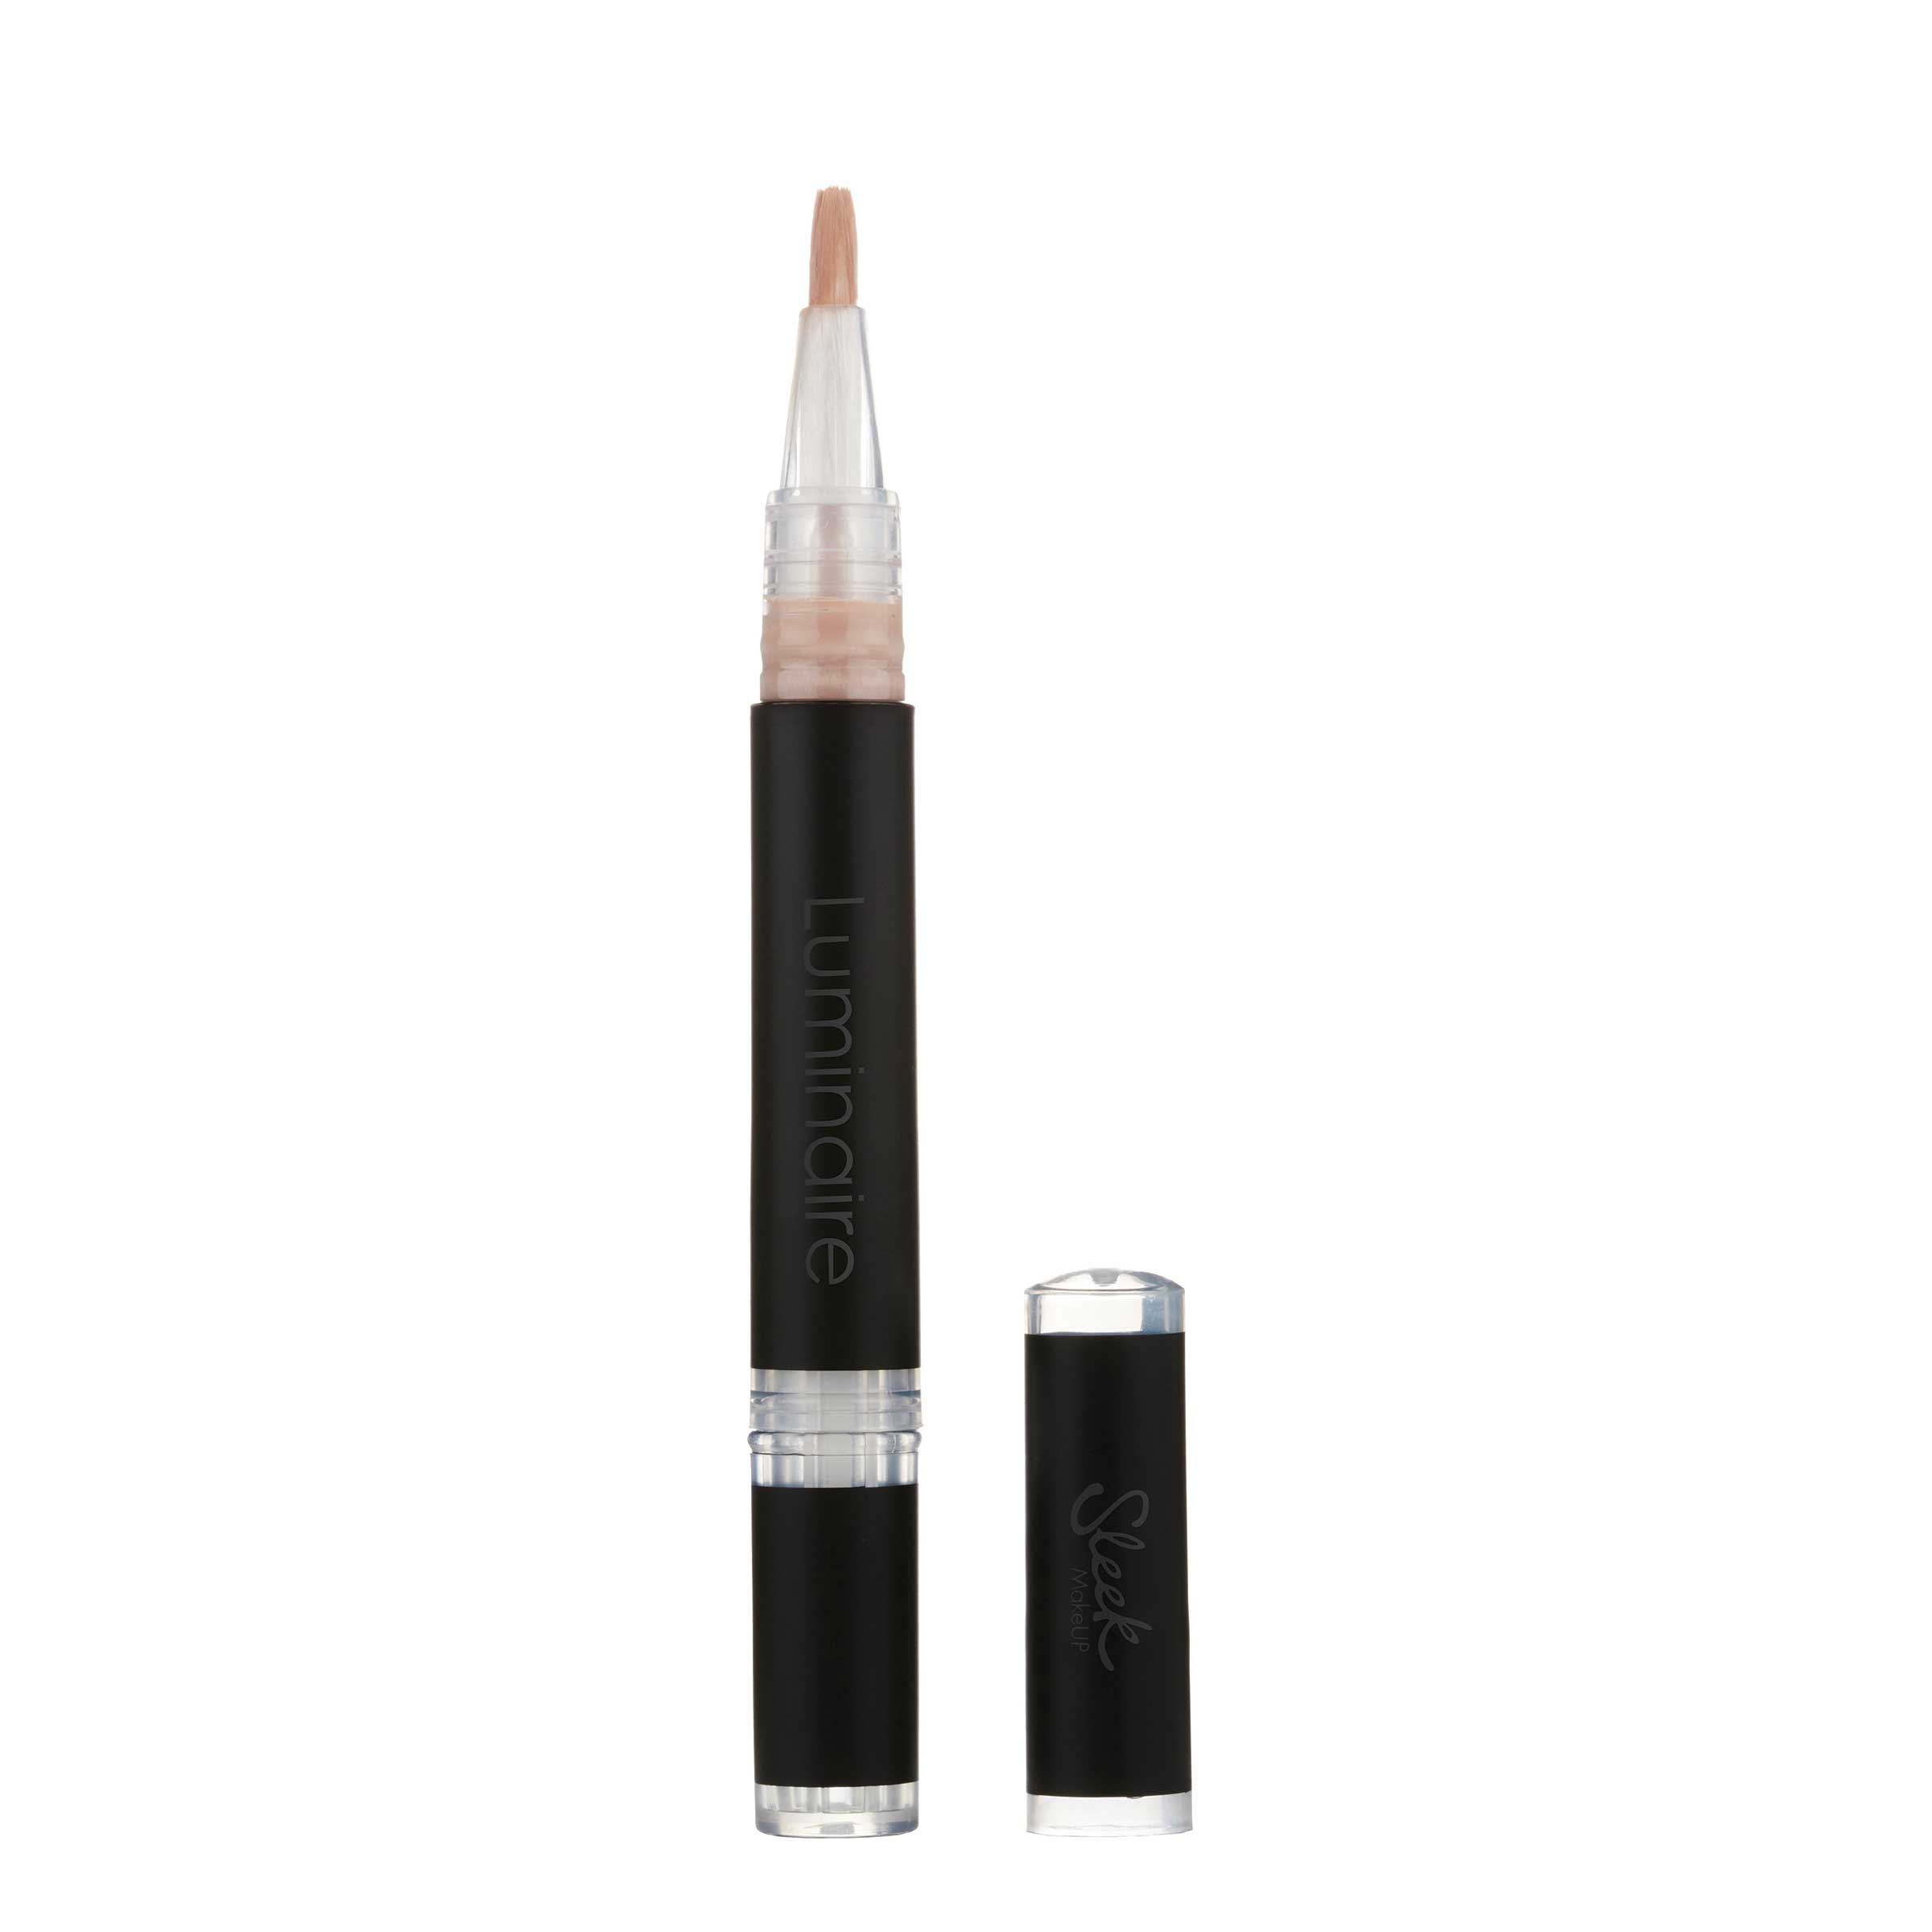 Luminaire Highlighting Concealer L03 Sleek Makeup